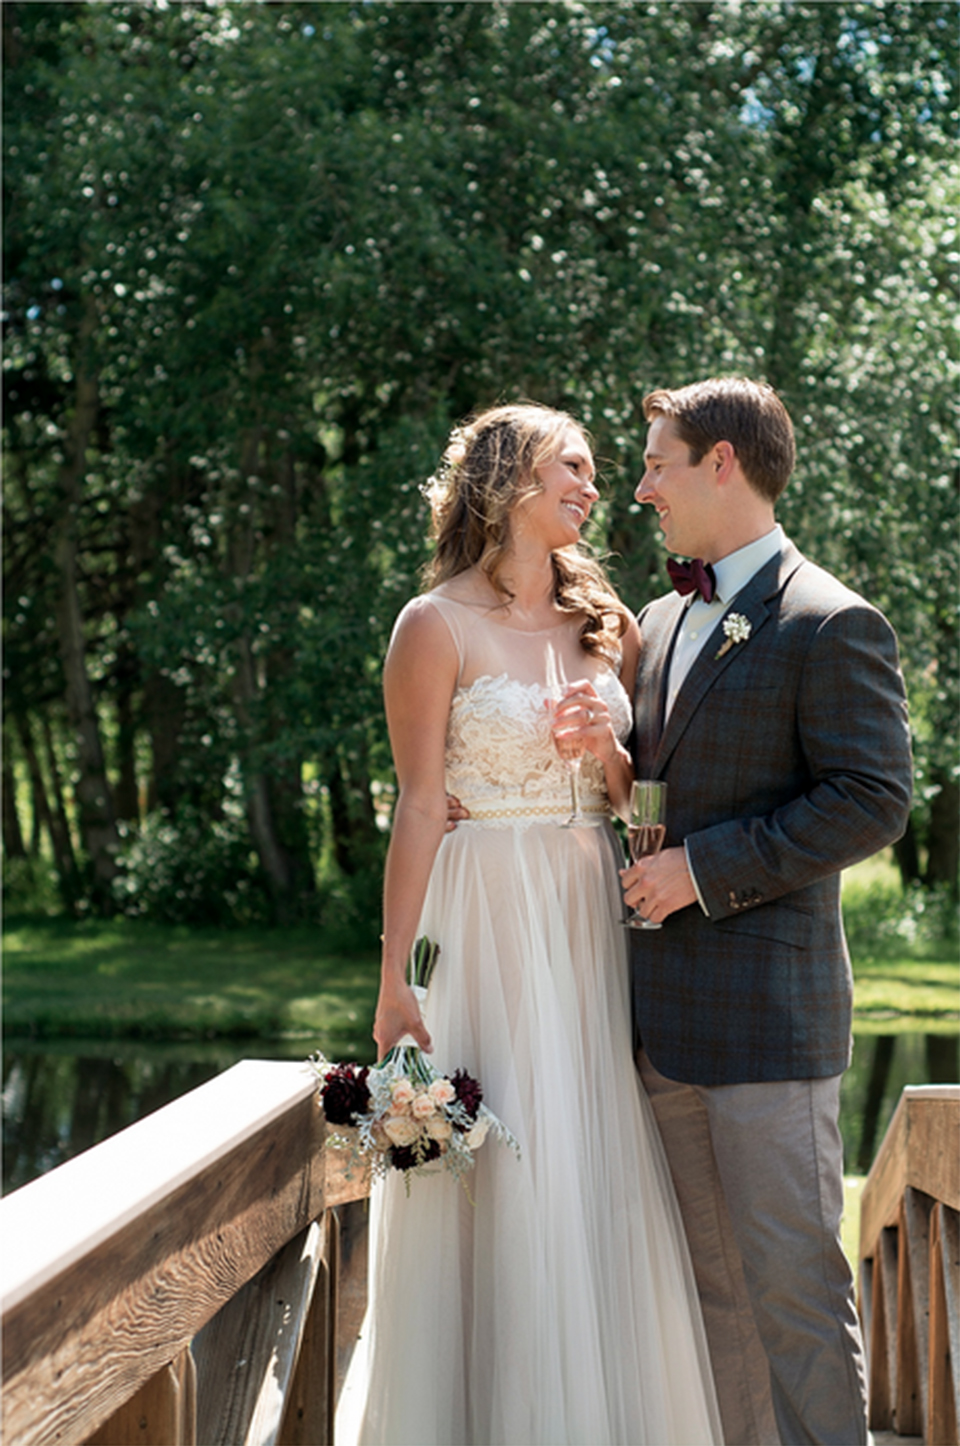 lovemarley-realbride-colorado-7.jpg